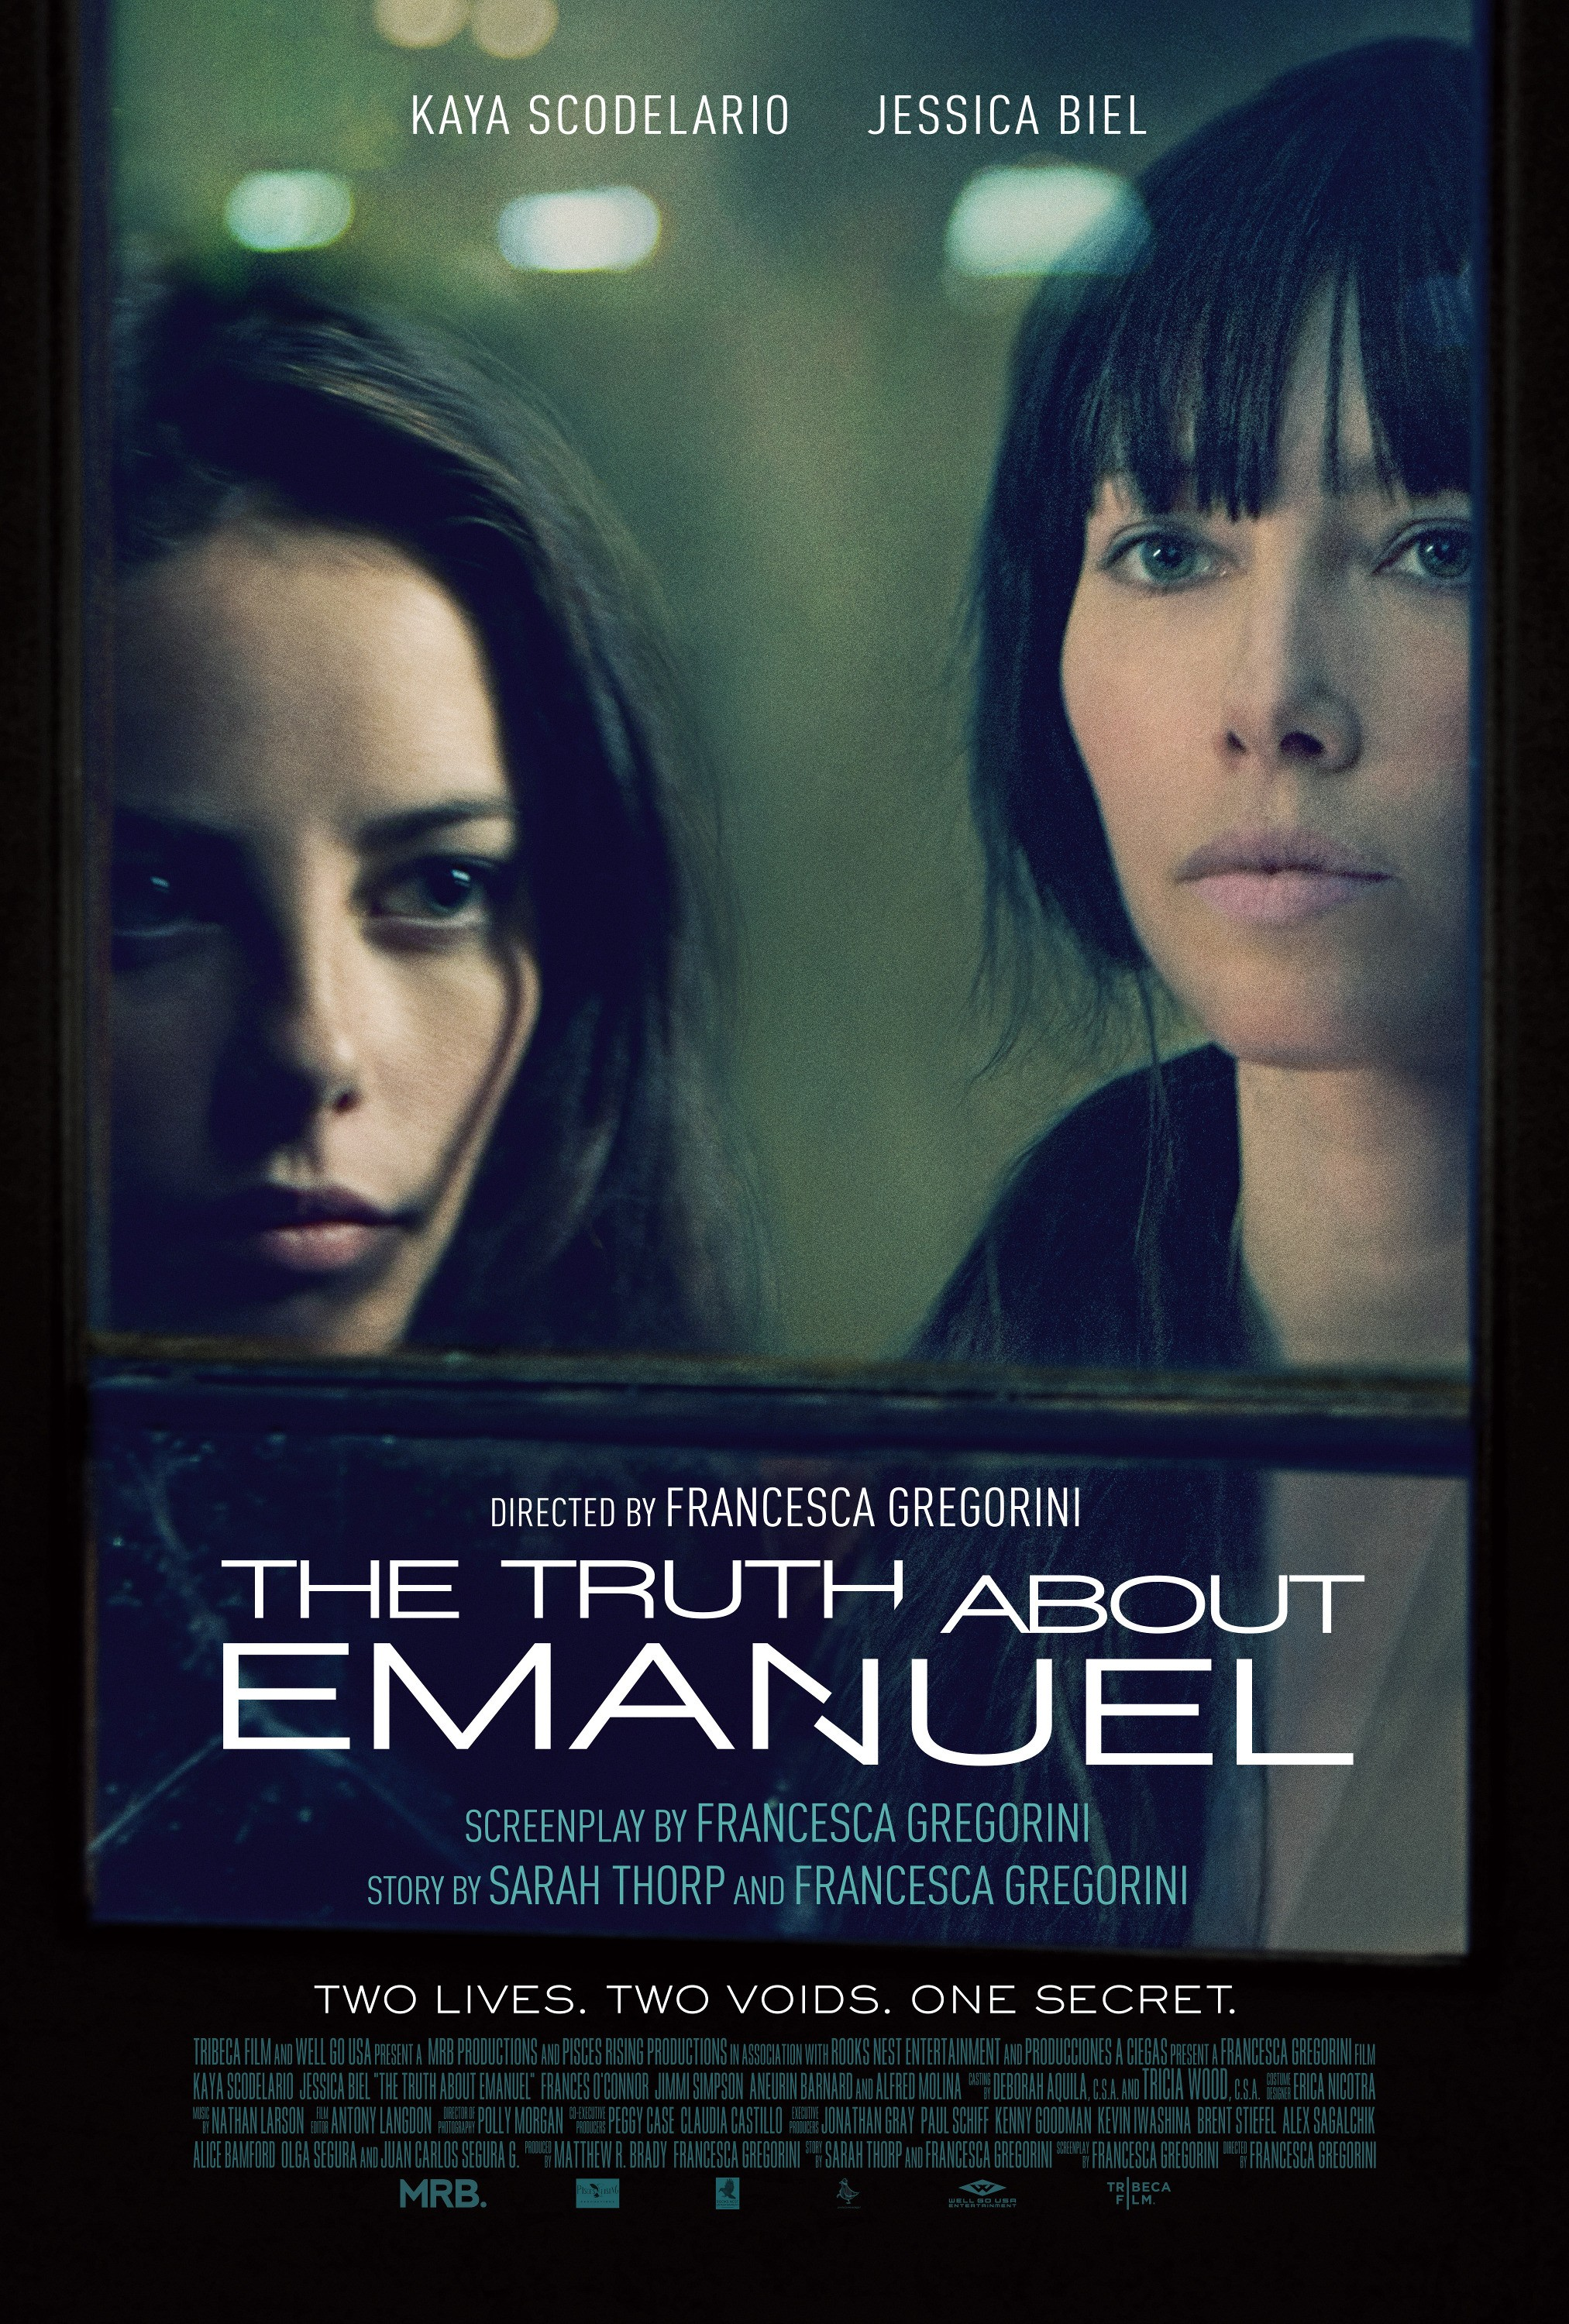 The Truth About Emanuel-Official Poster Banner PROMO POSTER XXLG-06NOVEMBRO2013